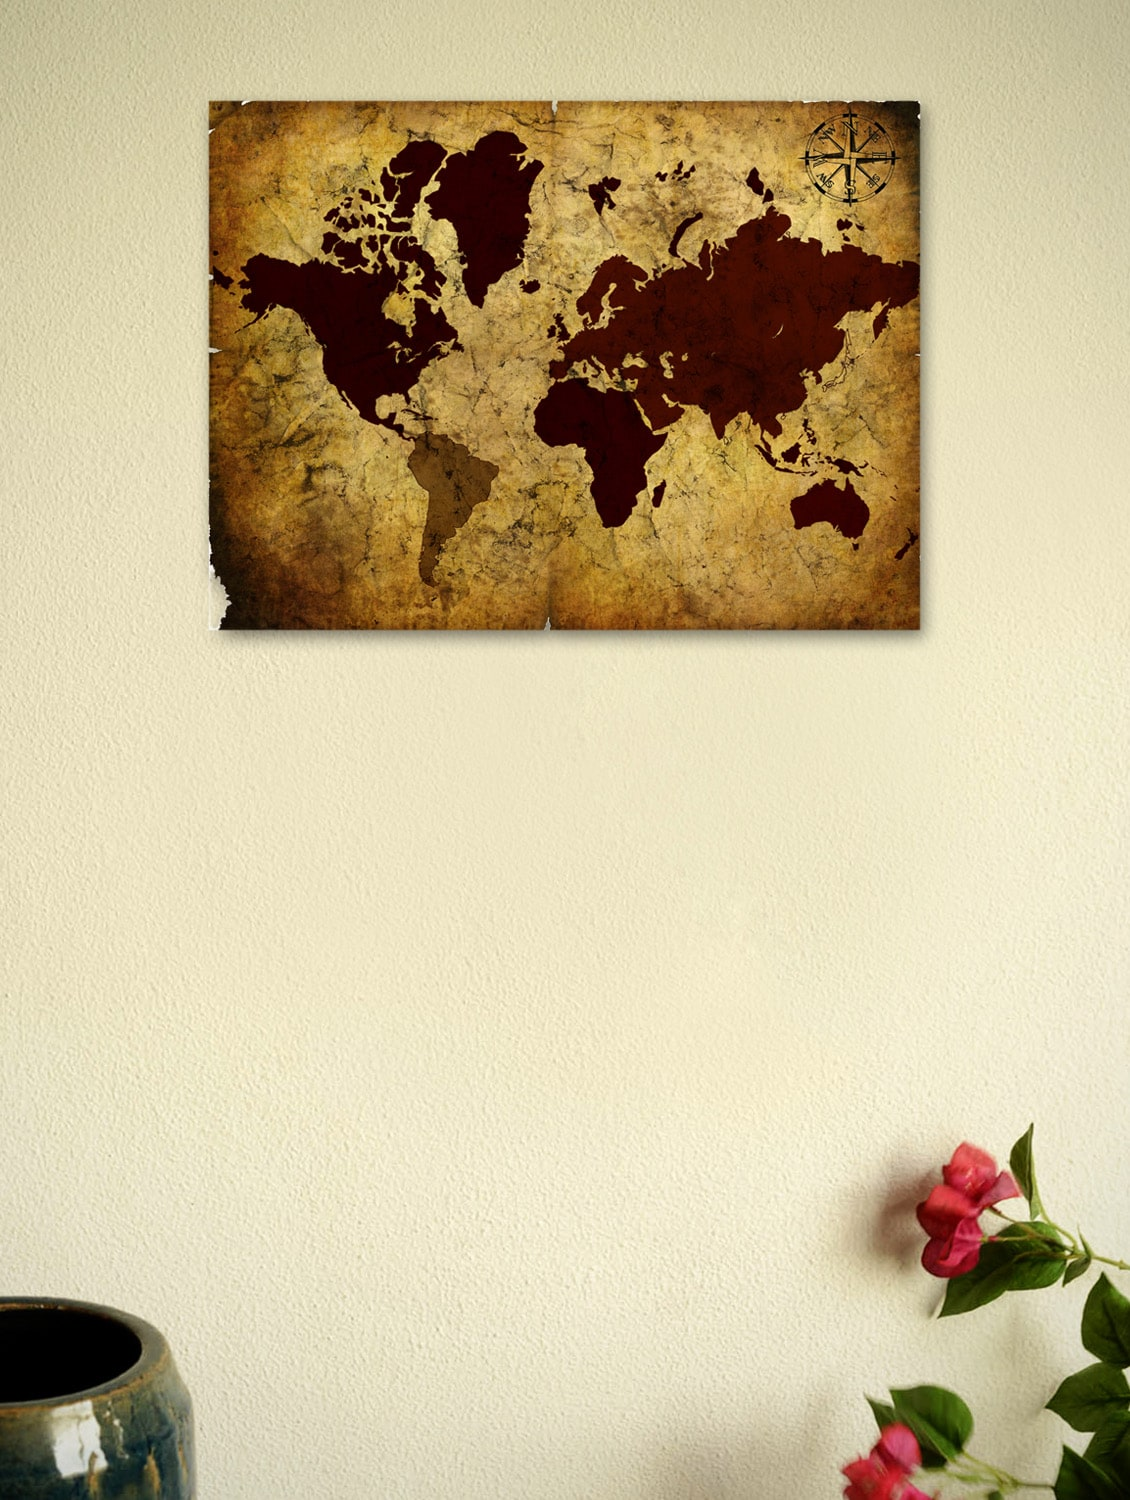 Buy vintage world map 03 poster by seven rays online shopping for buy vintage world map 03 poster by seven rays online shopping for posters in india 965014 gumiabroncs Gallery